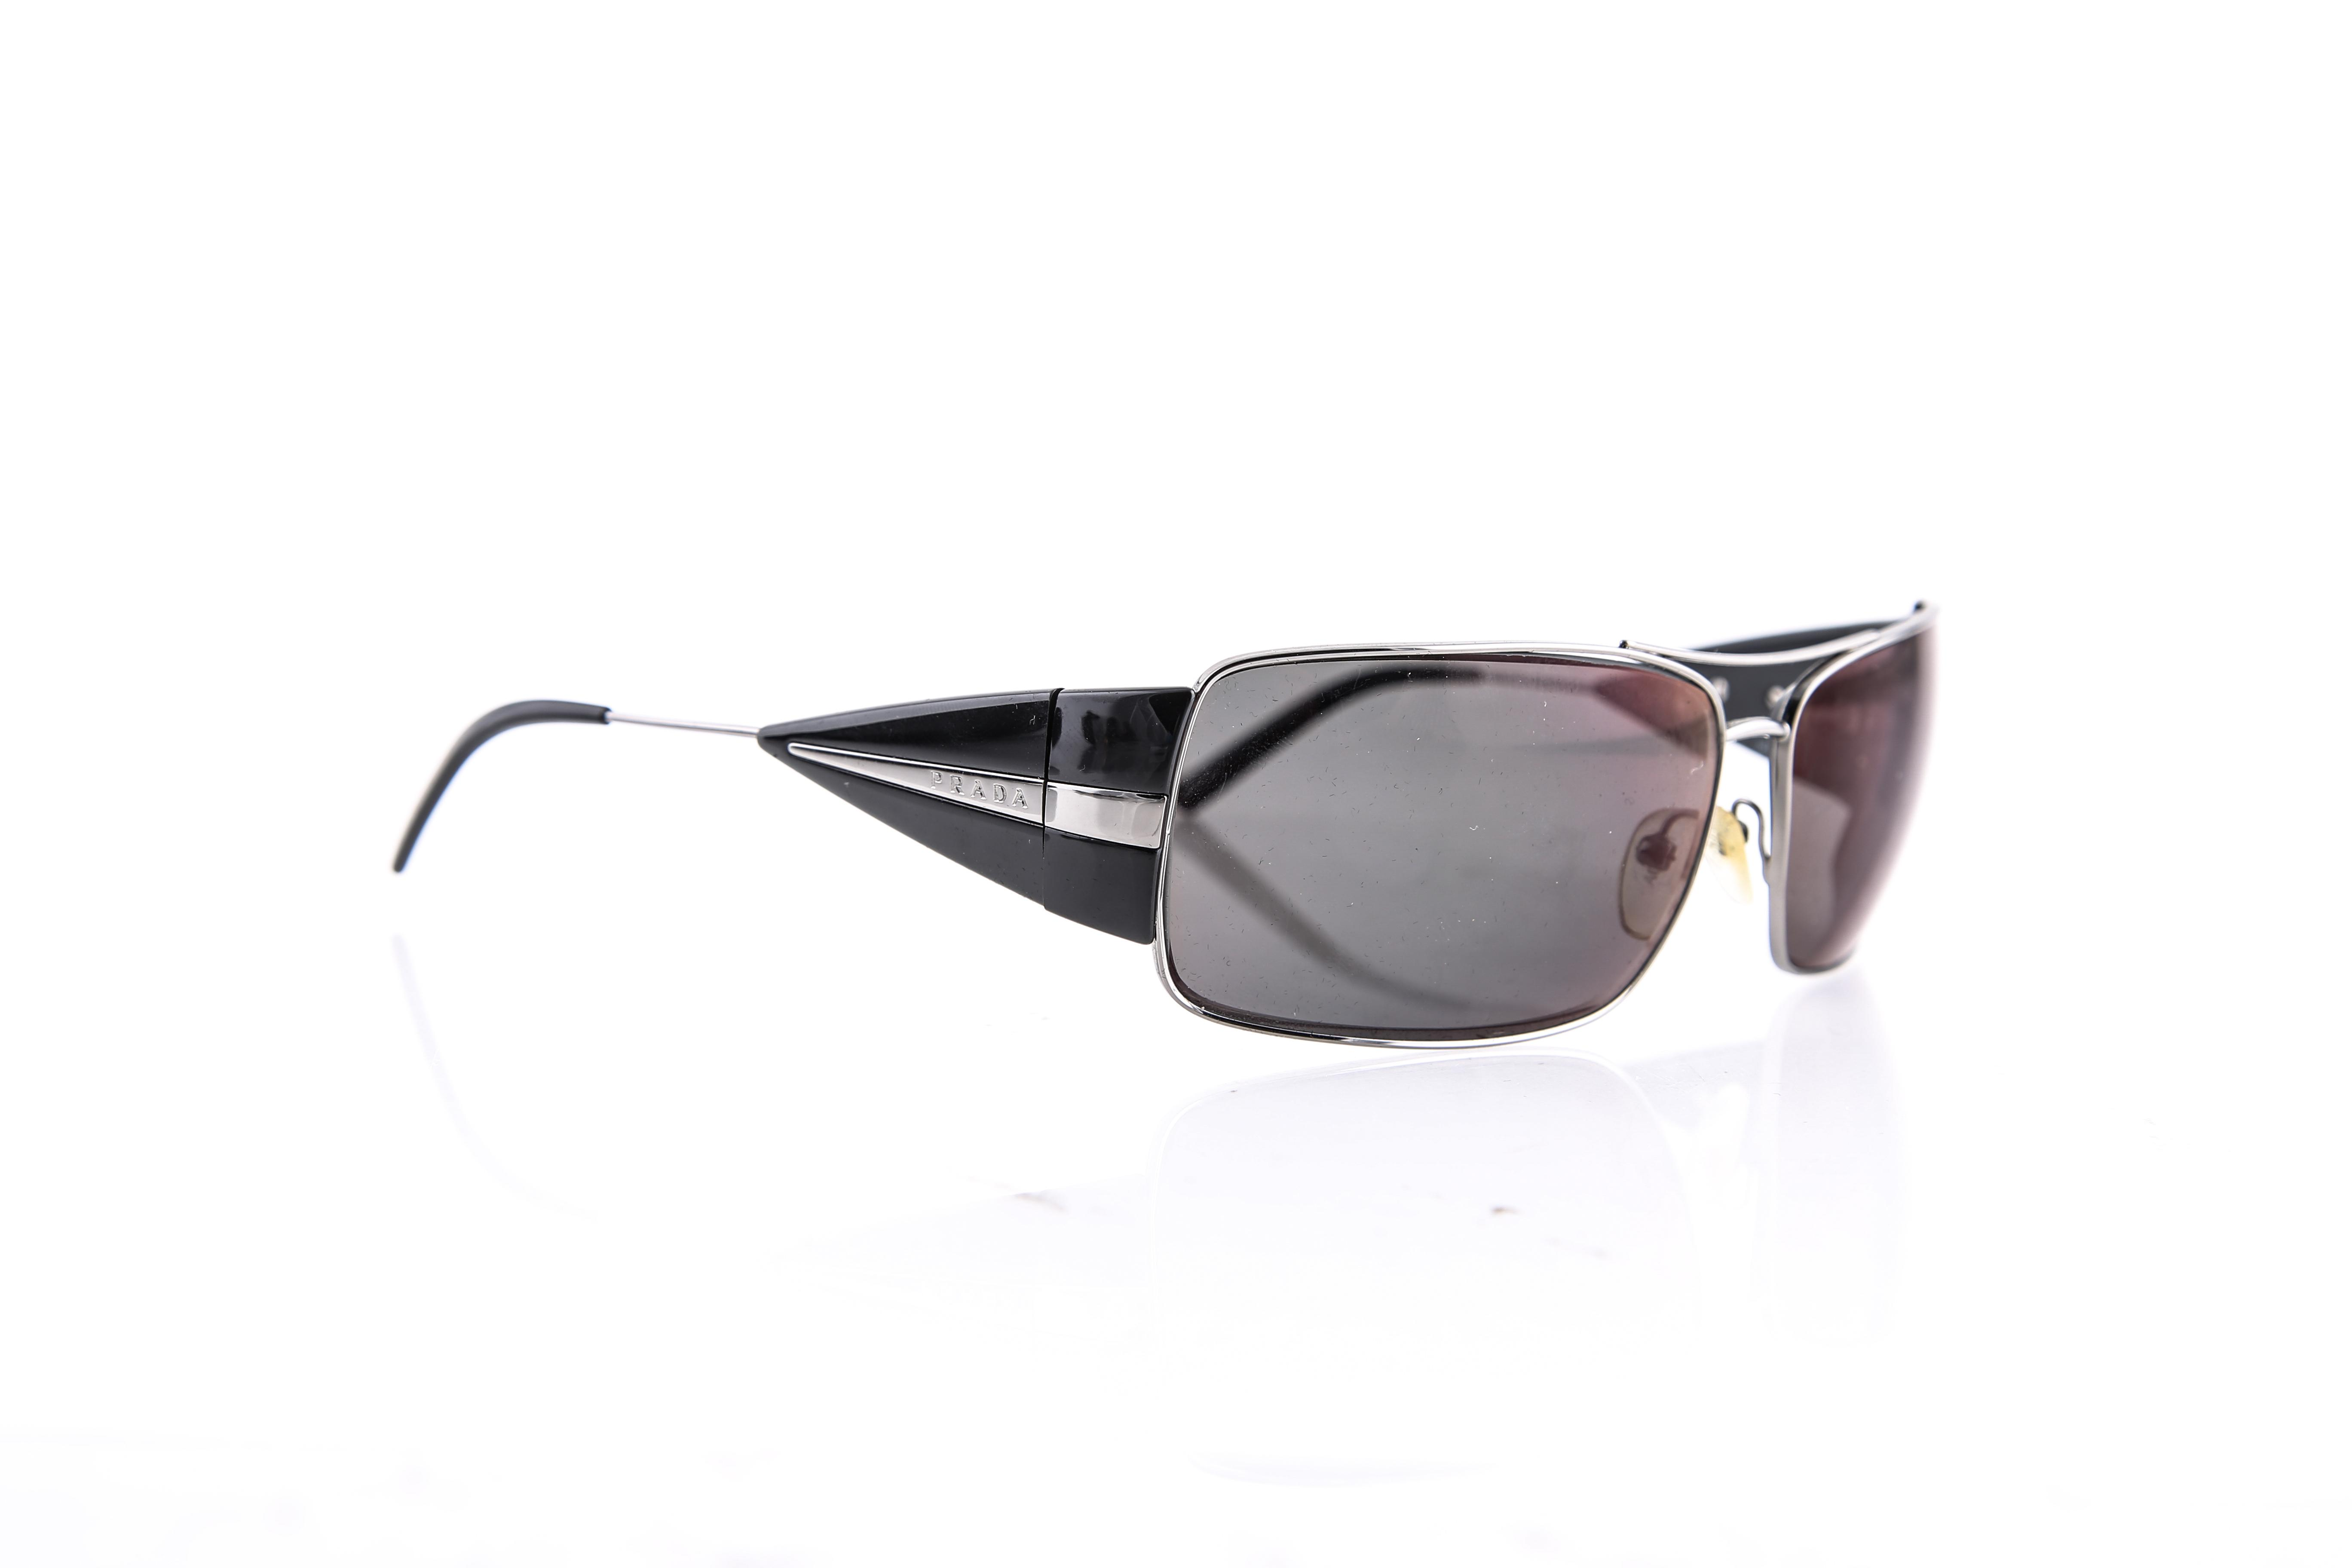 e35ffcd9be discount code for authentic prada sunglasses spr55h brown 01842 a949b